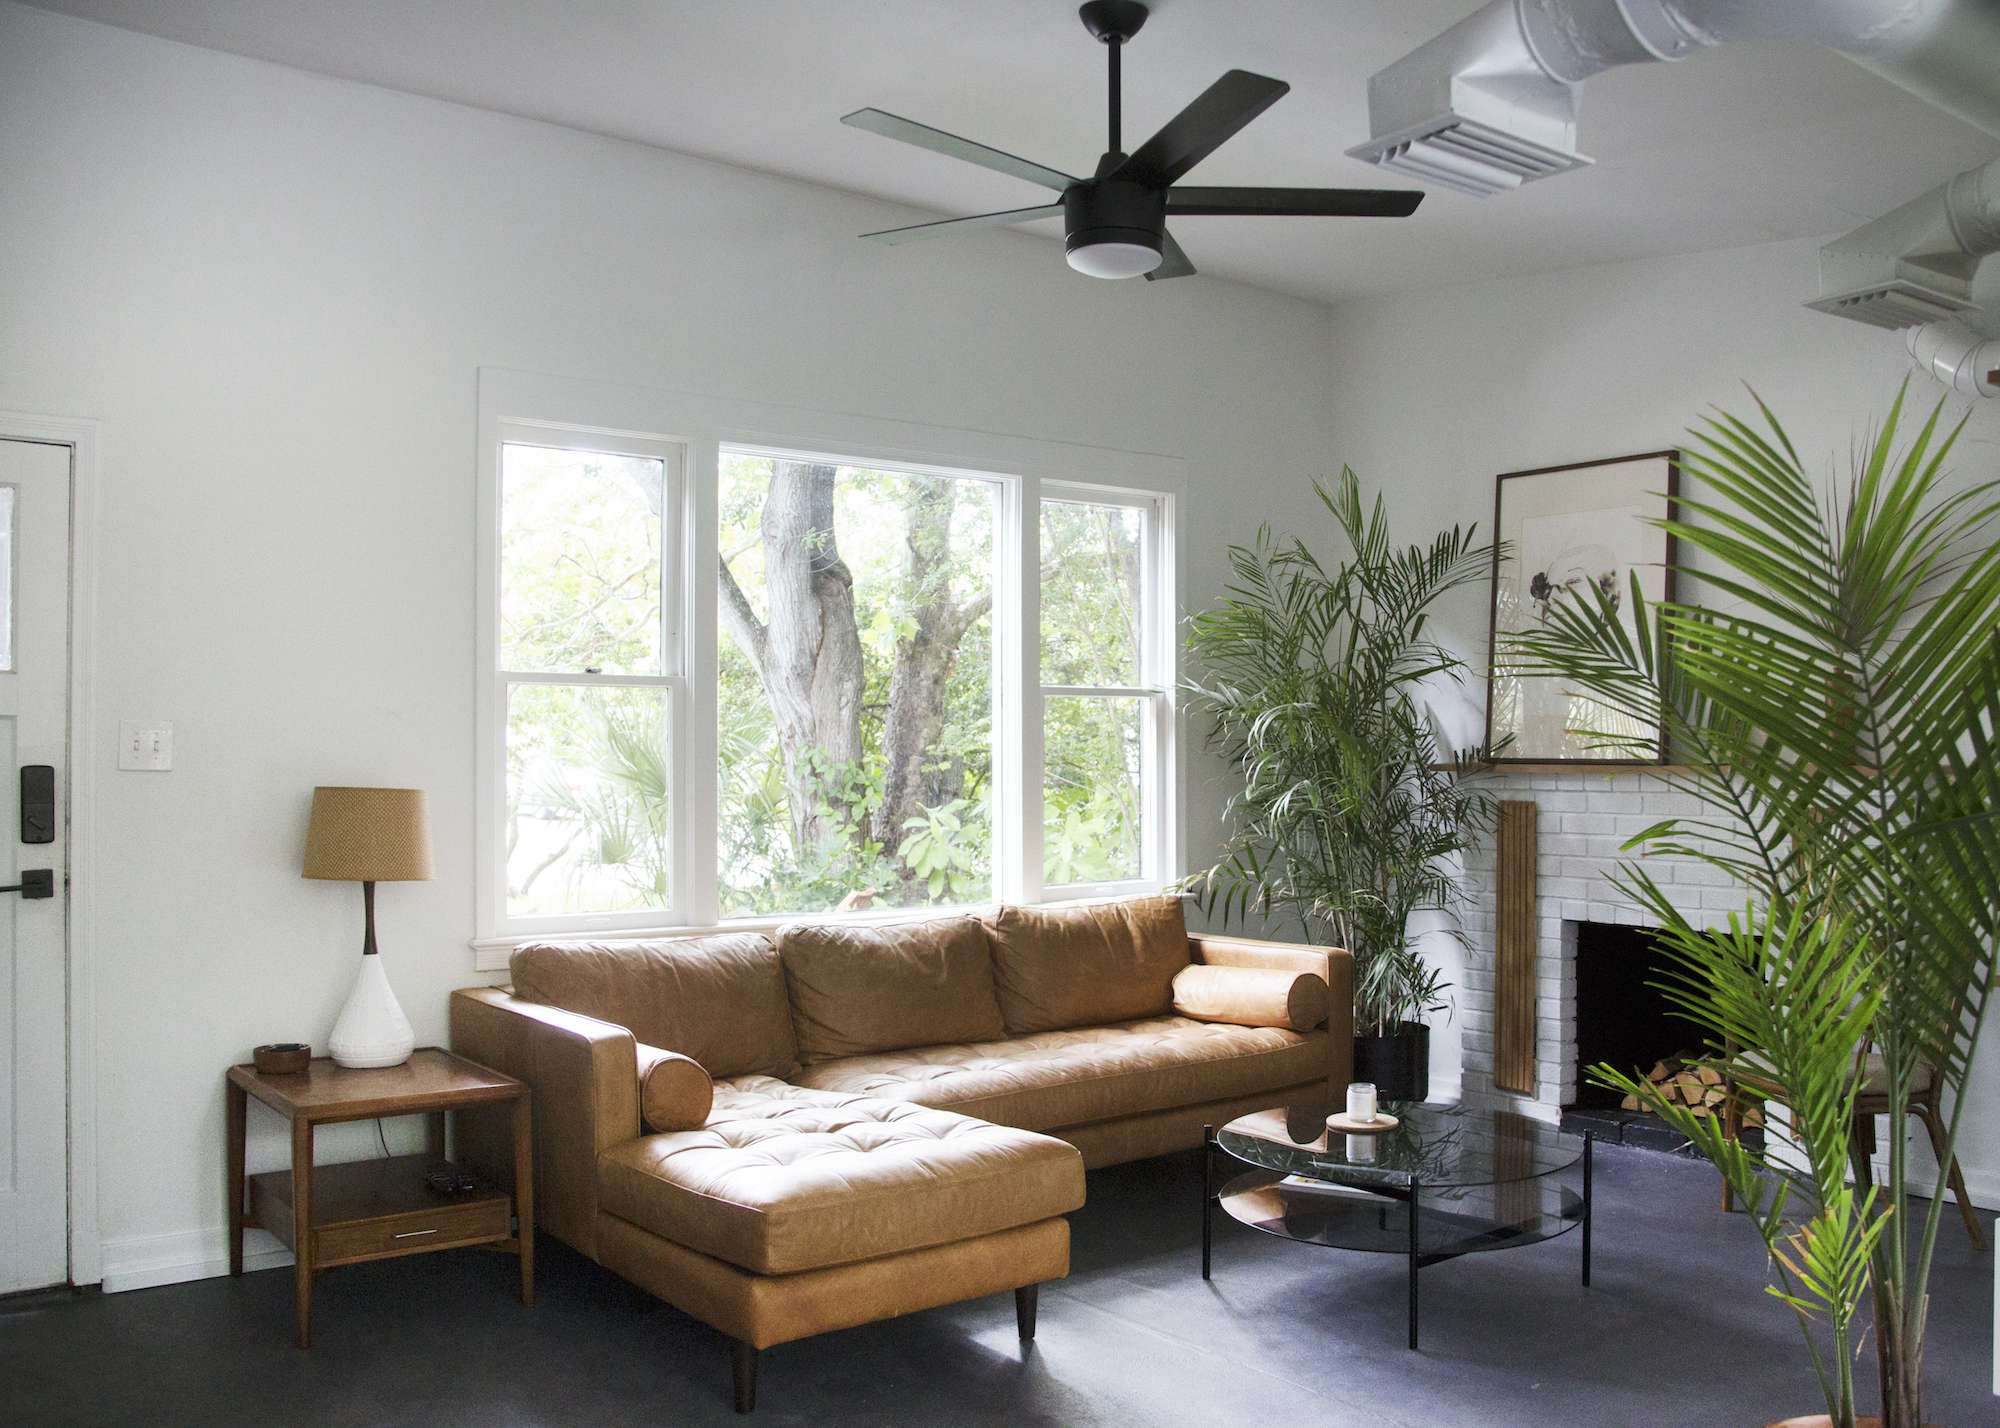 brown-leather-rectangular-couch-florida-living-room-plants